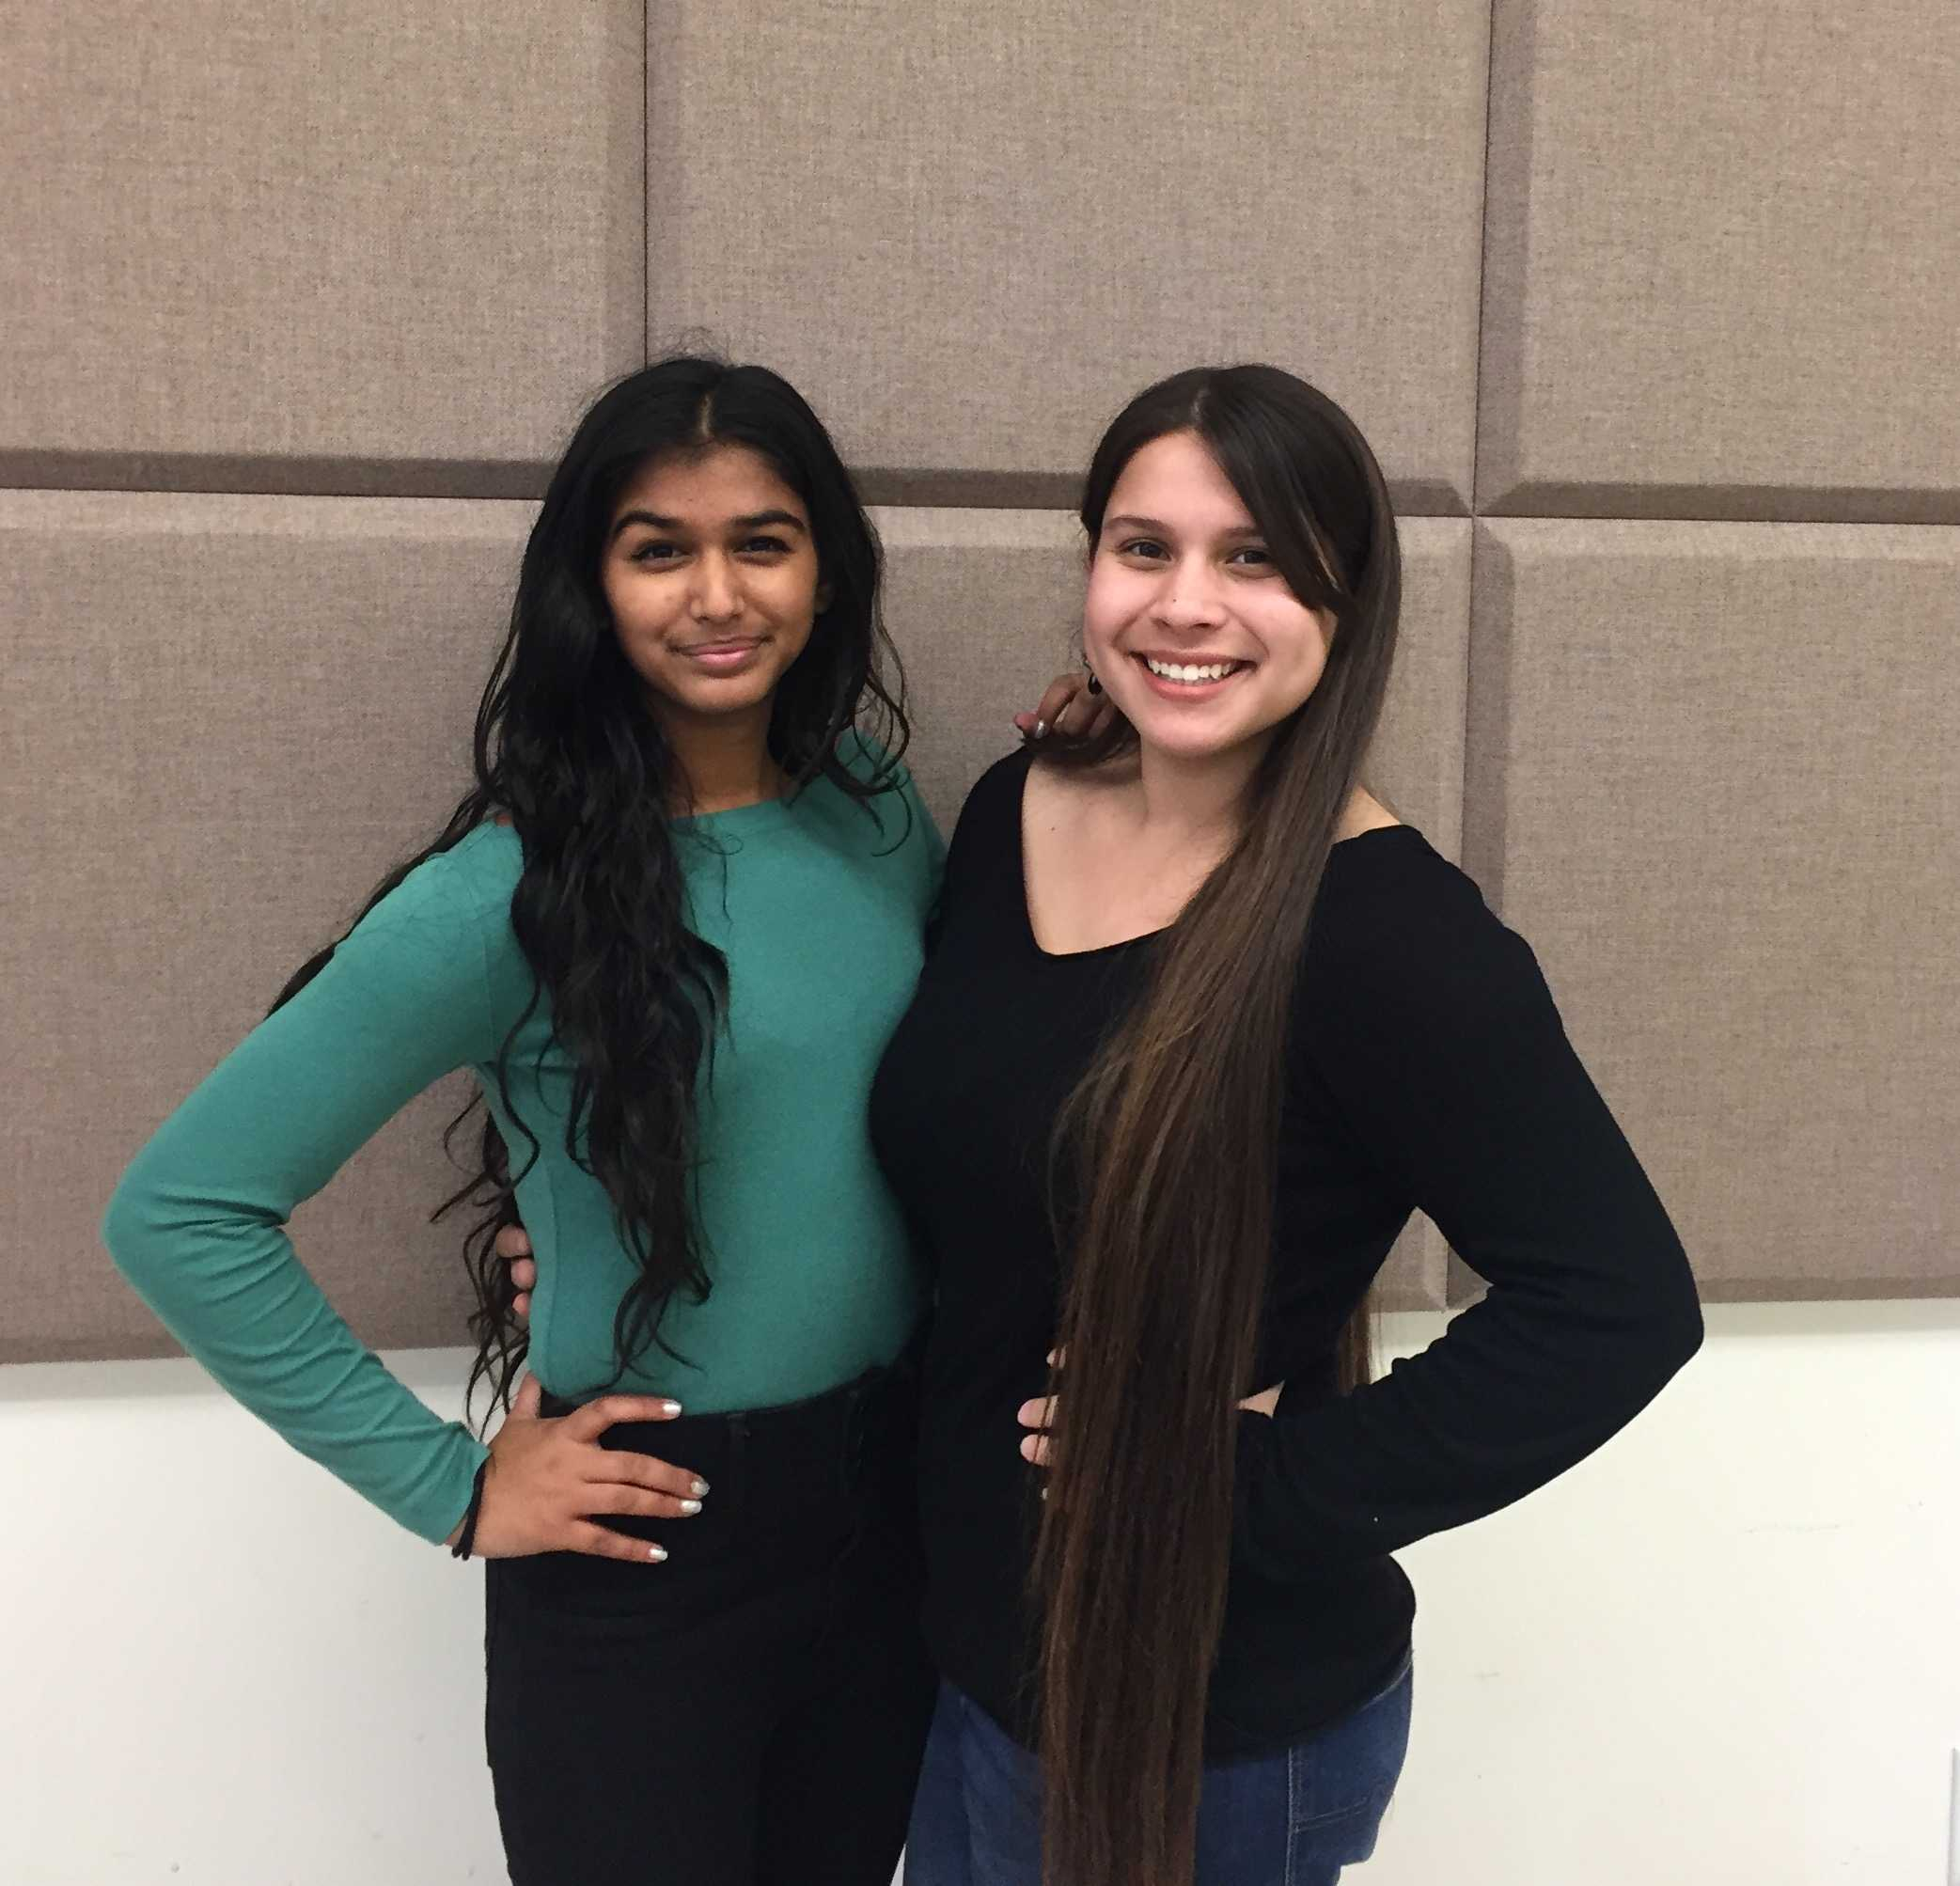 Priyanka Kedia (left) and Simonne Campos (right), both playing Elizabeth Proctor.